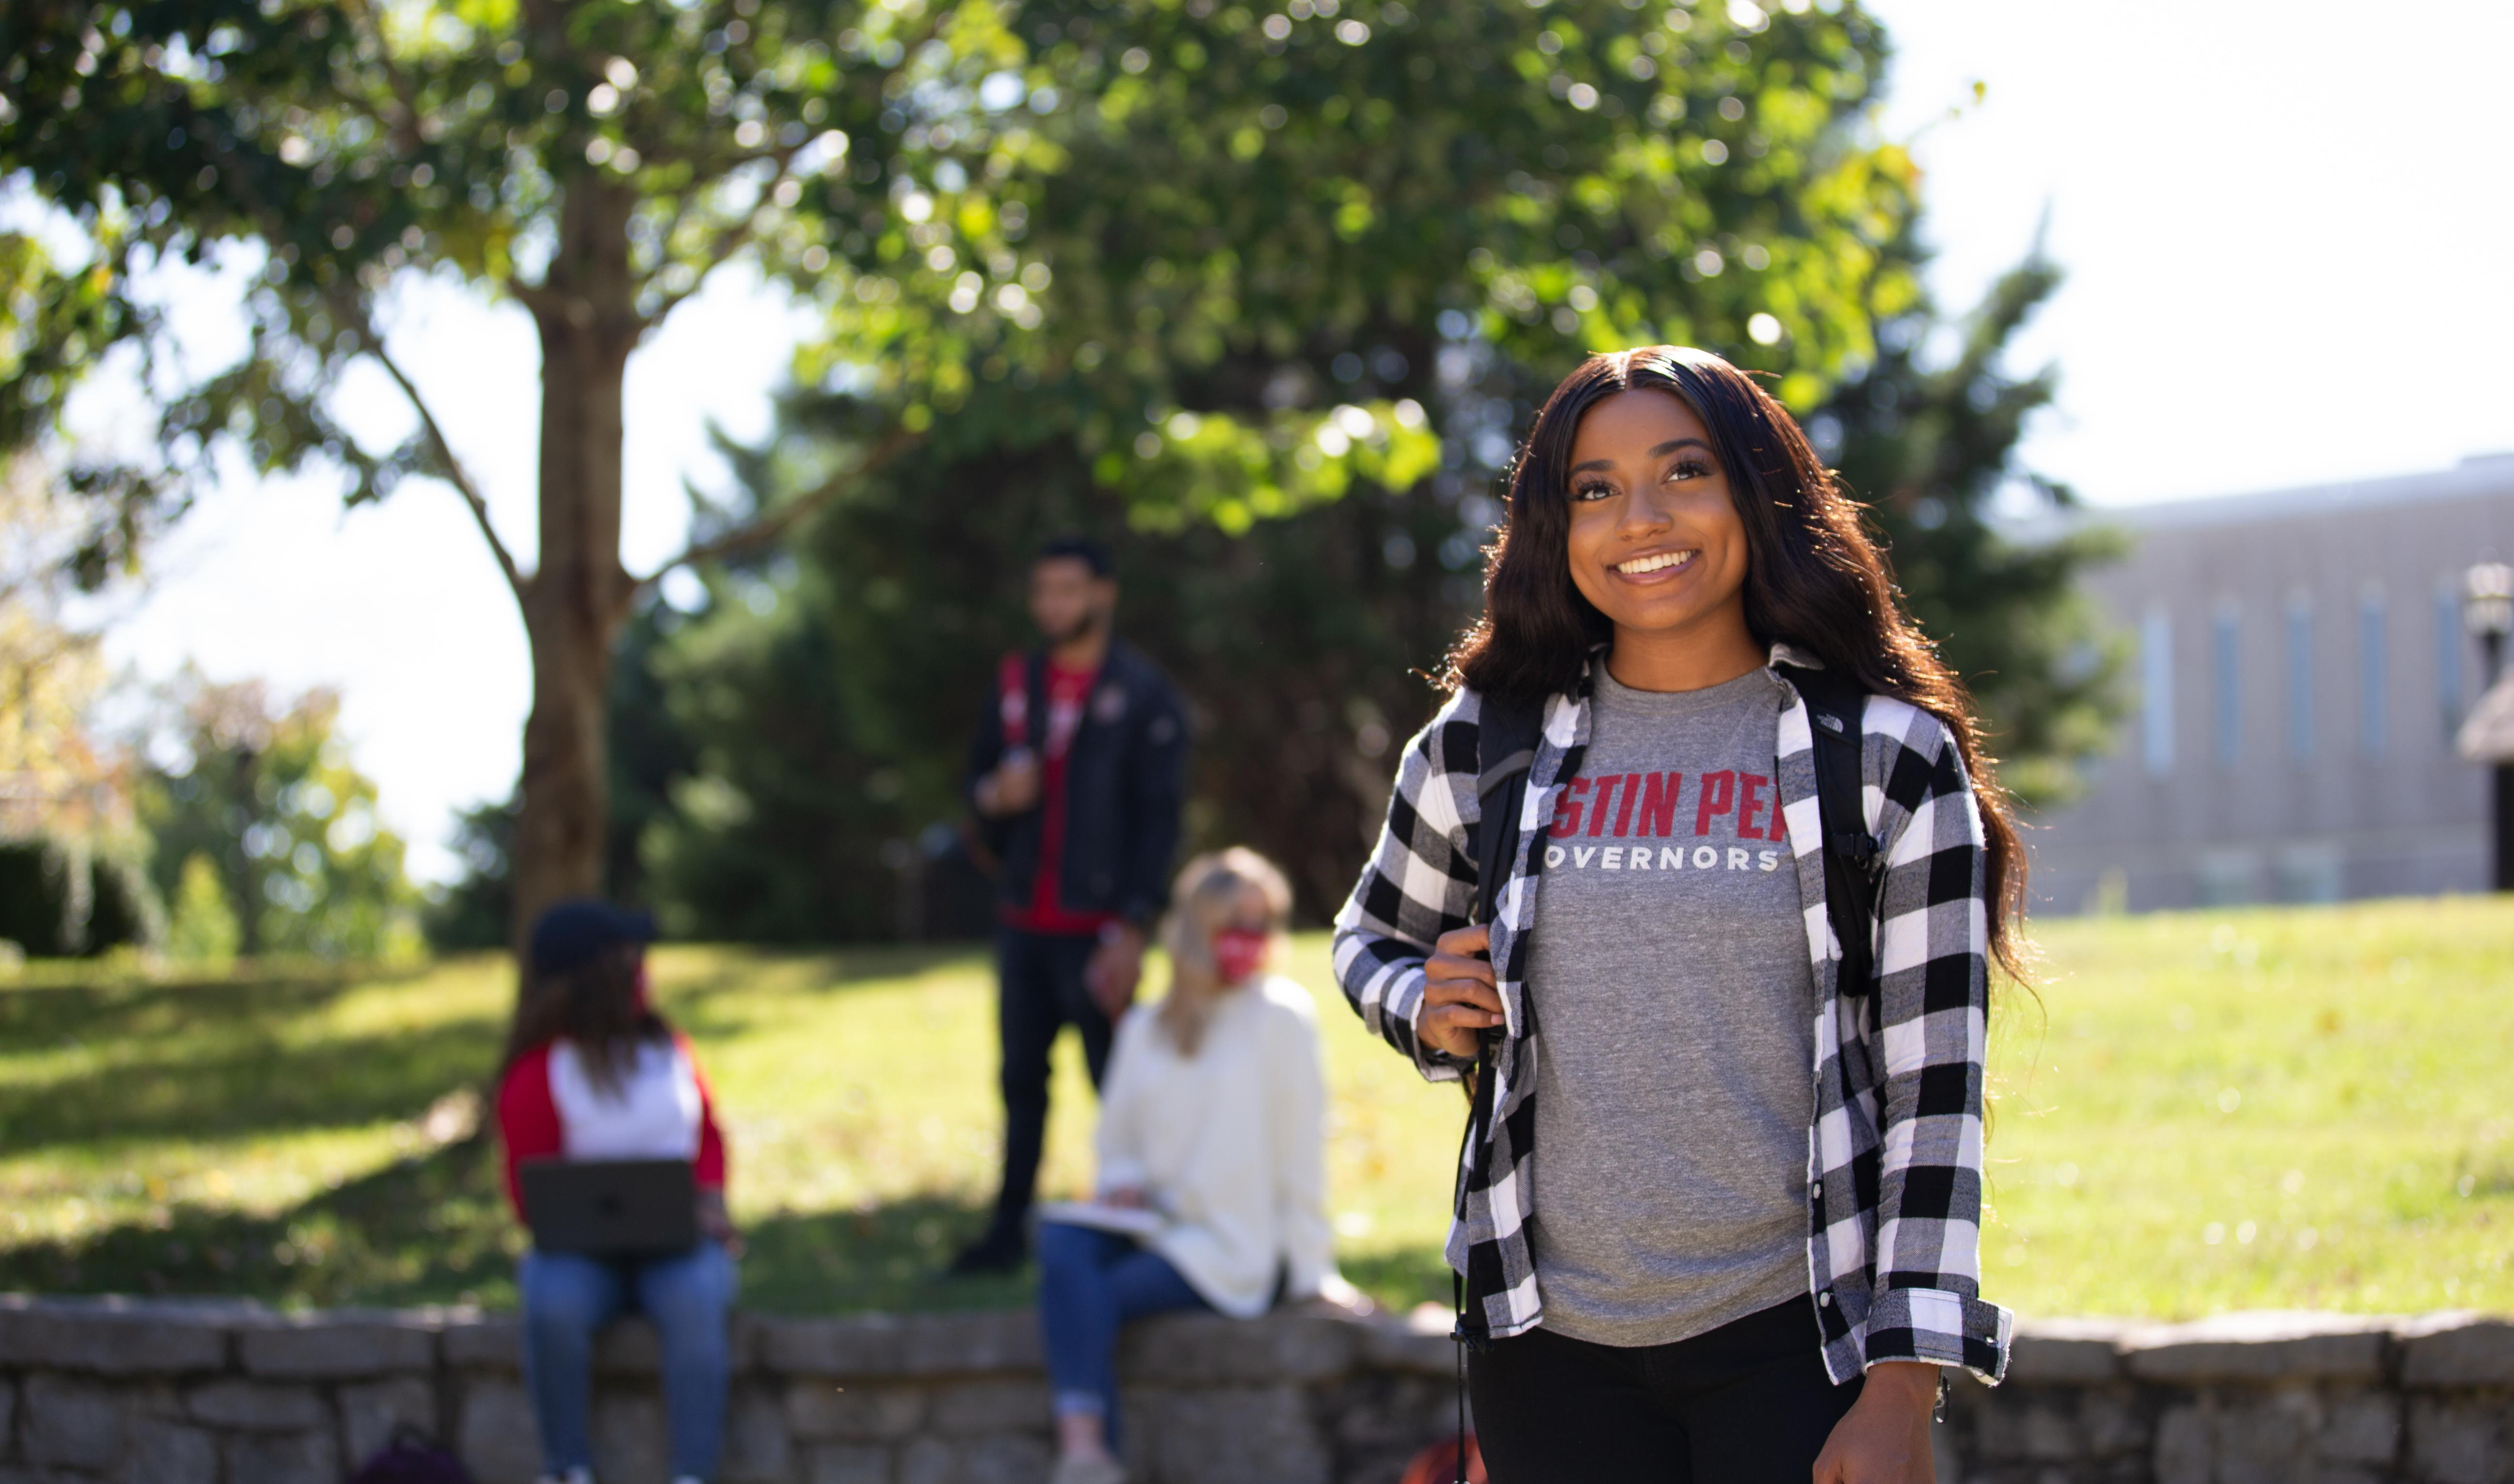 Austin Peay will return to pre-COVID class formats this summer, plans to be face-to-face this fall